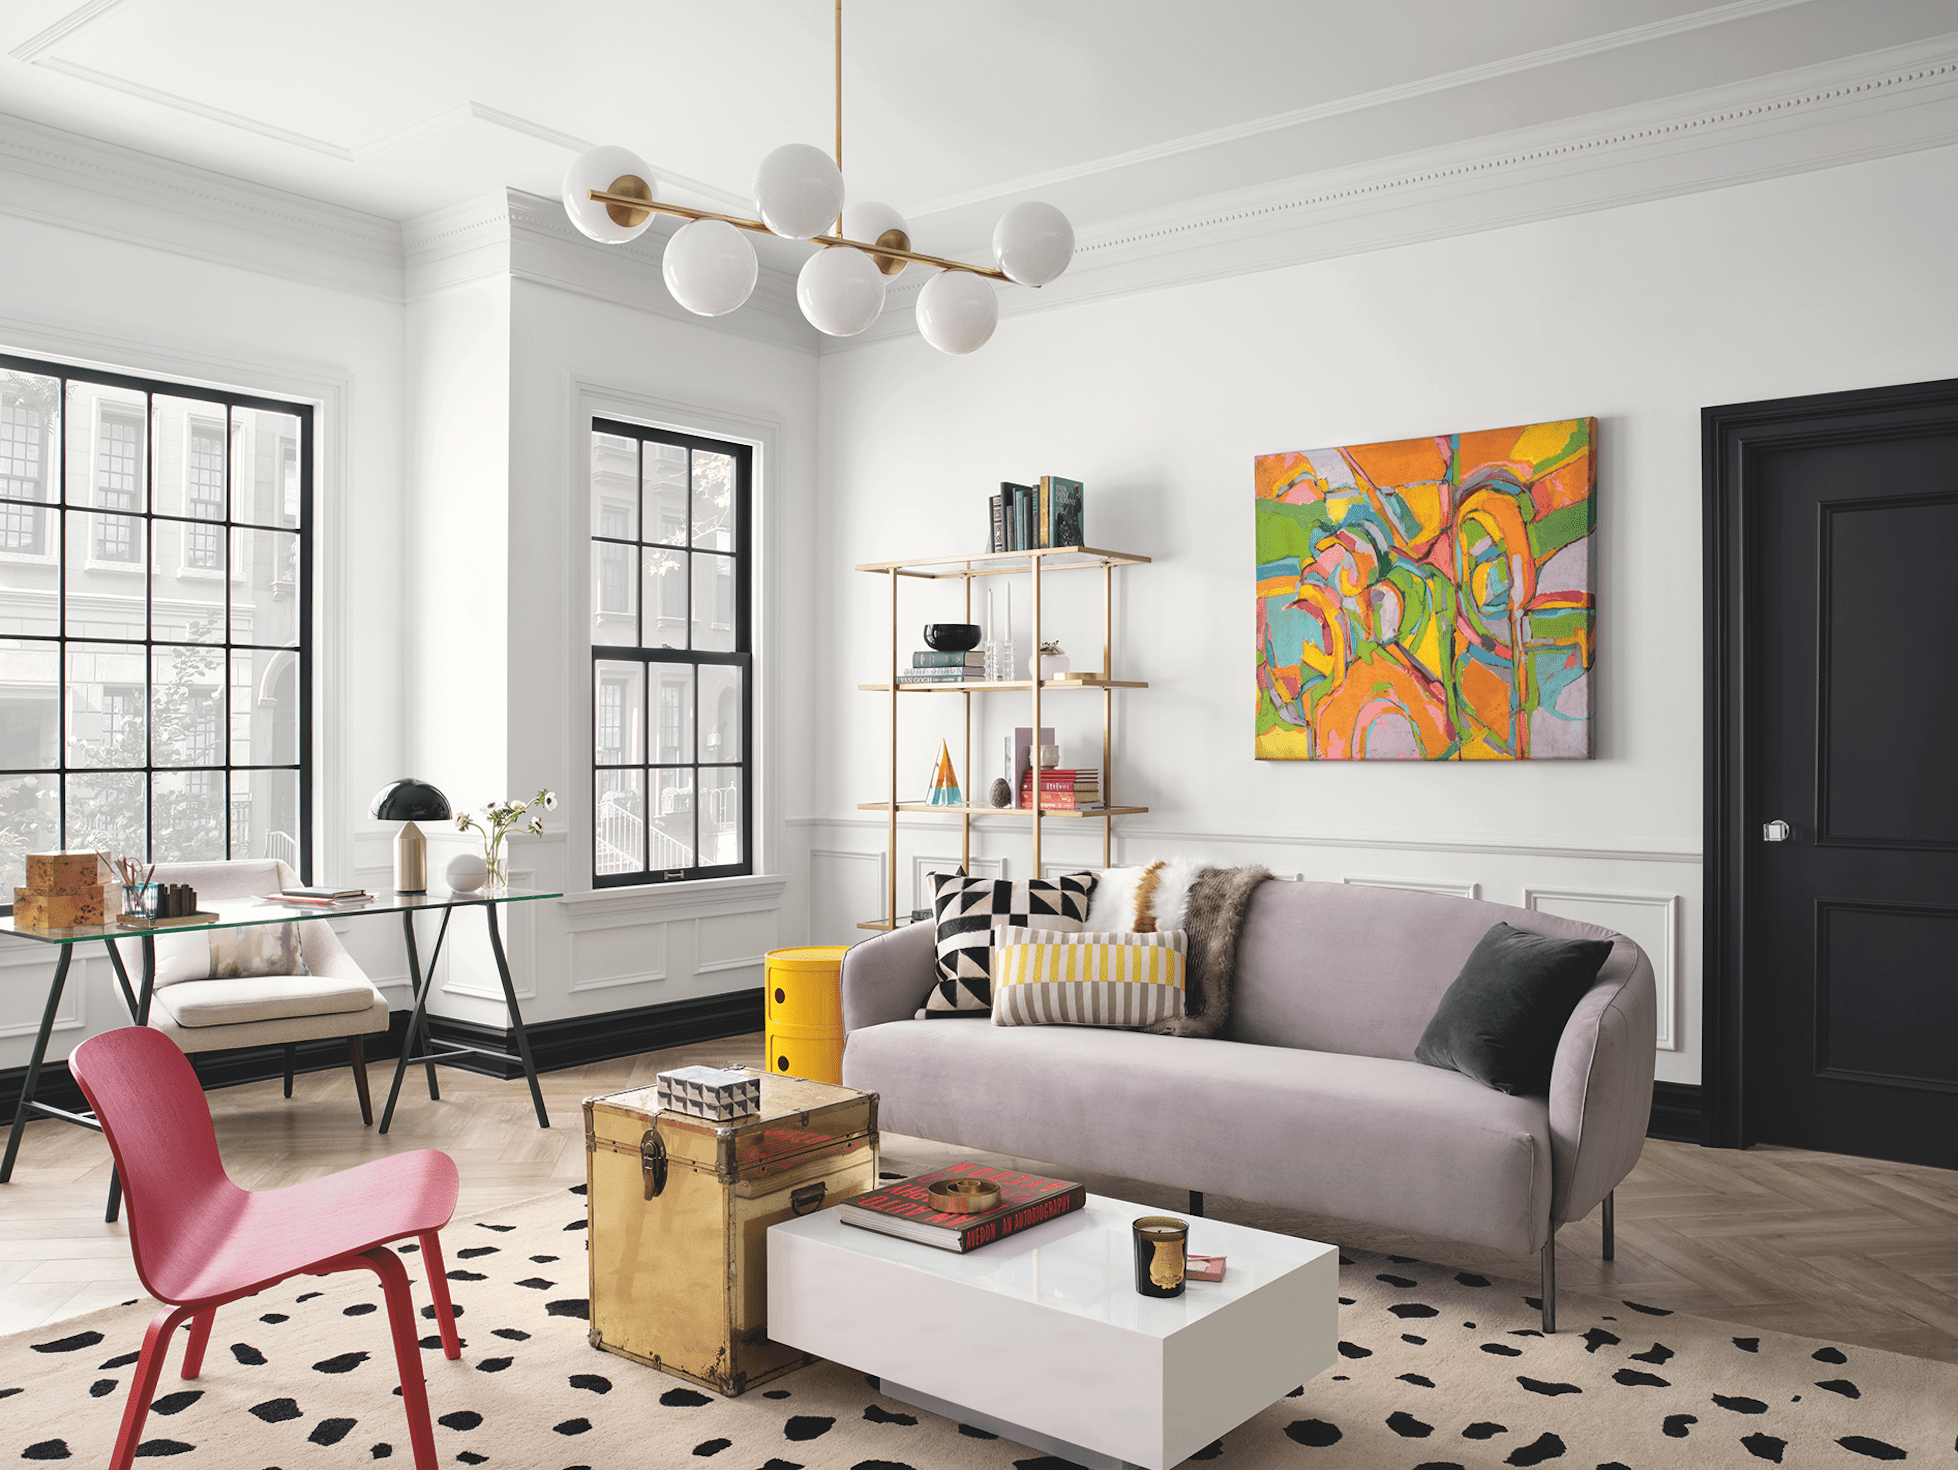 How Color Trends Will Change in 2020, According to Designers